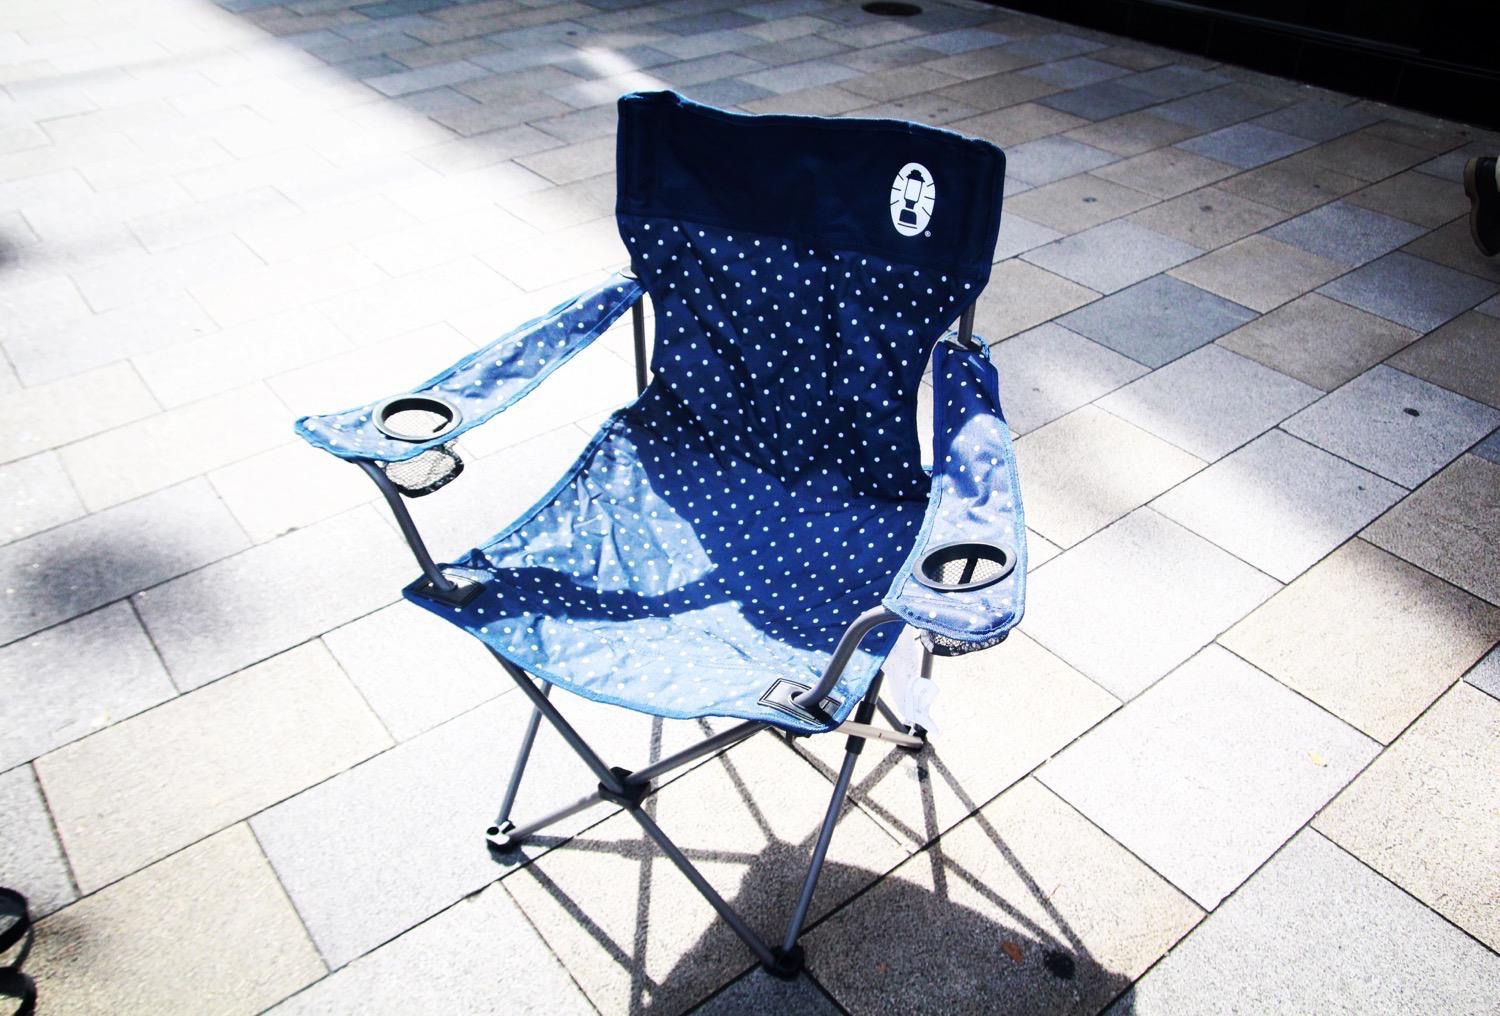 Caleman outdoor chair2